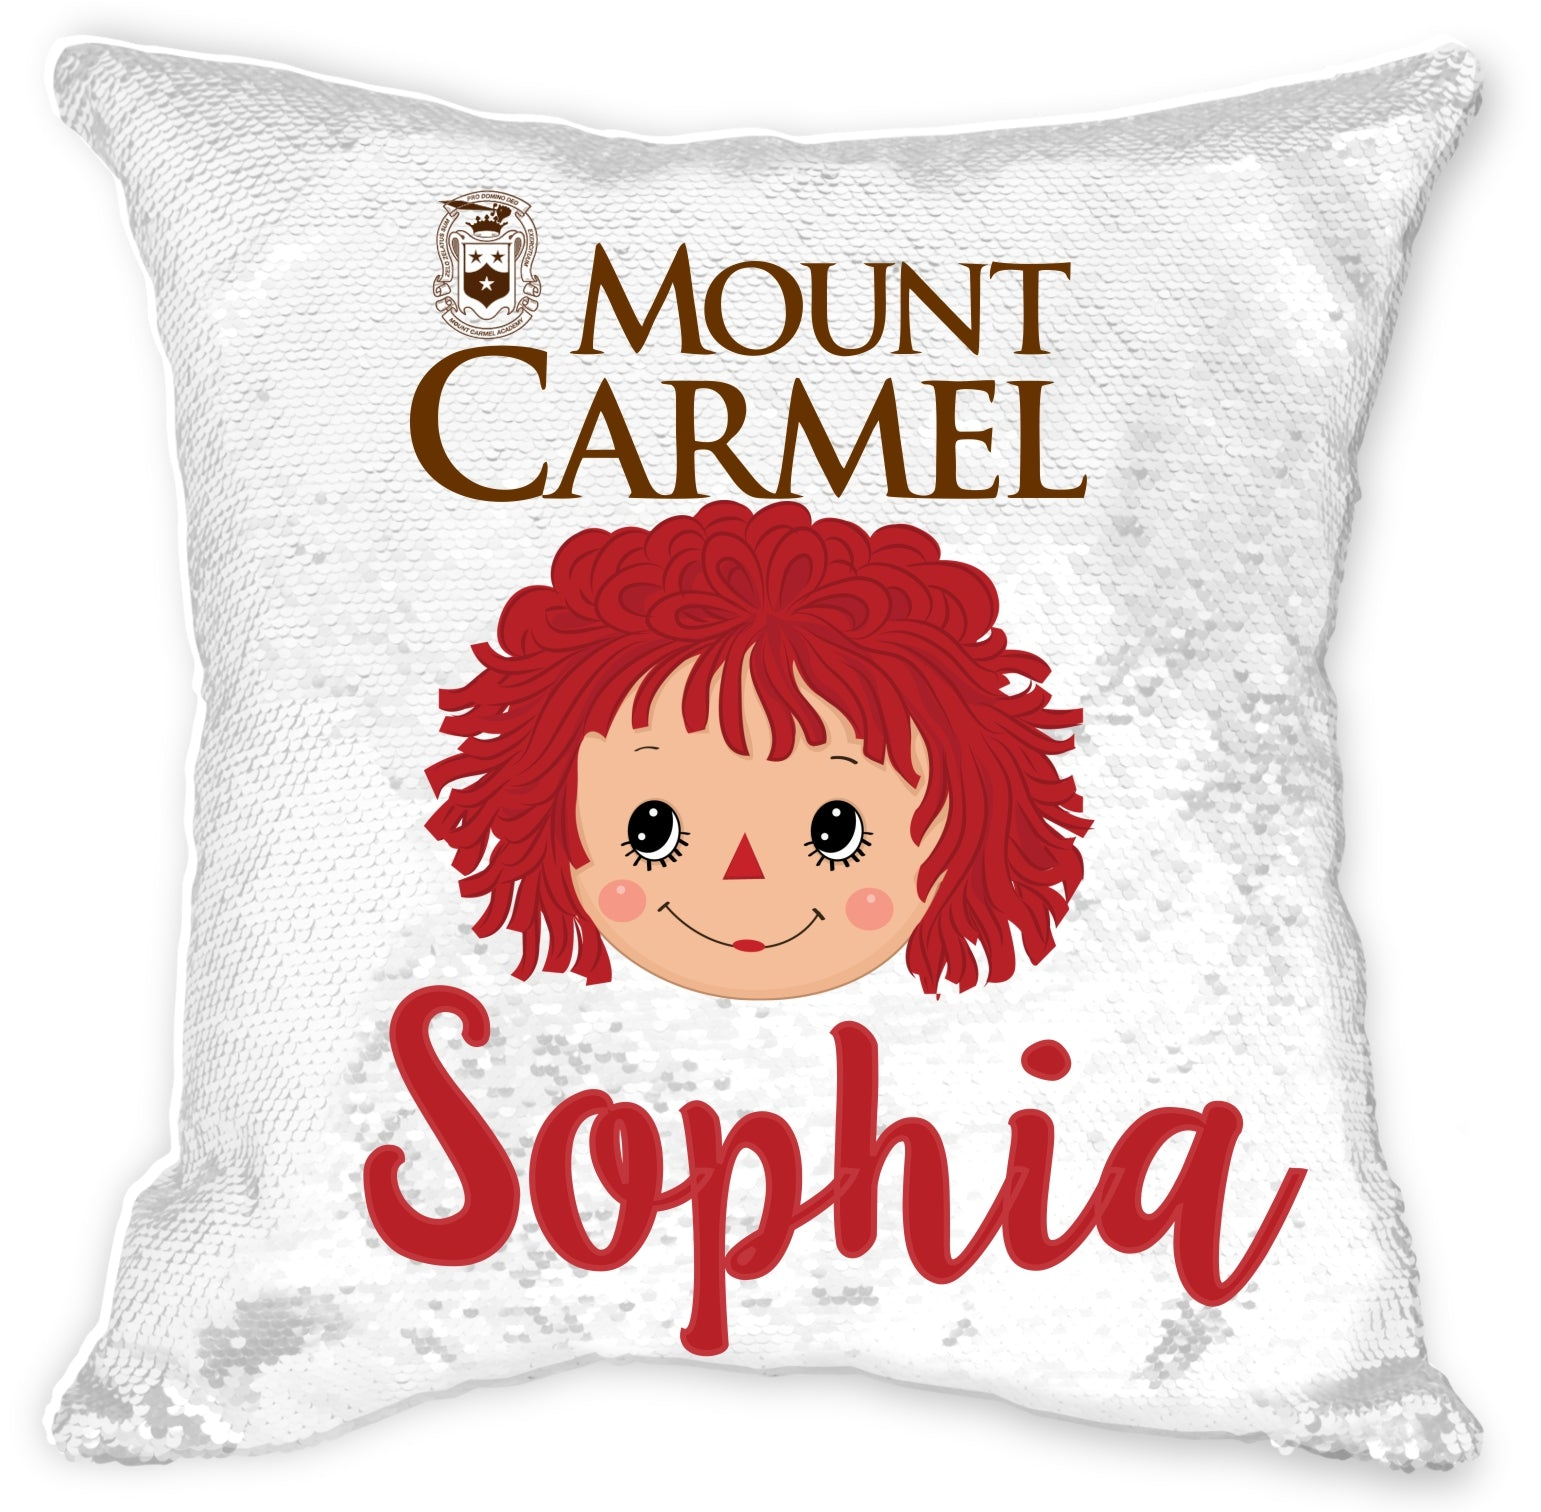 Personalized Mount Carmel Sequin Pillowcase